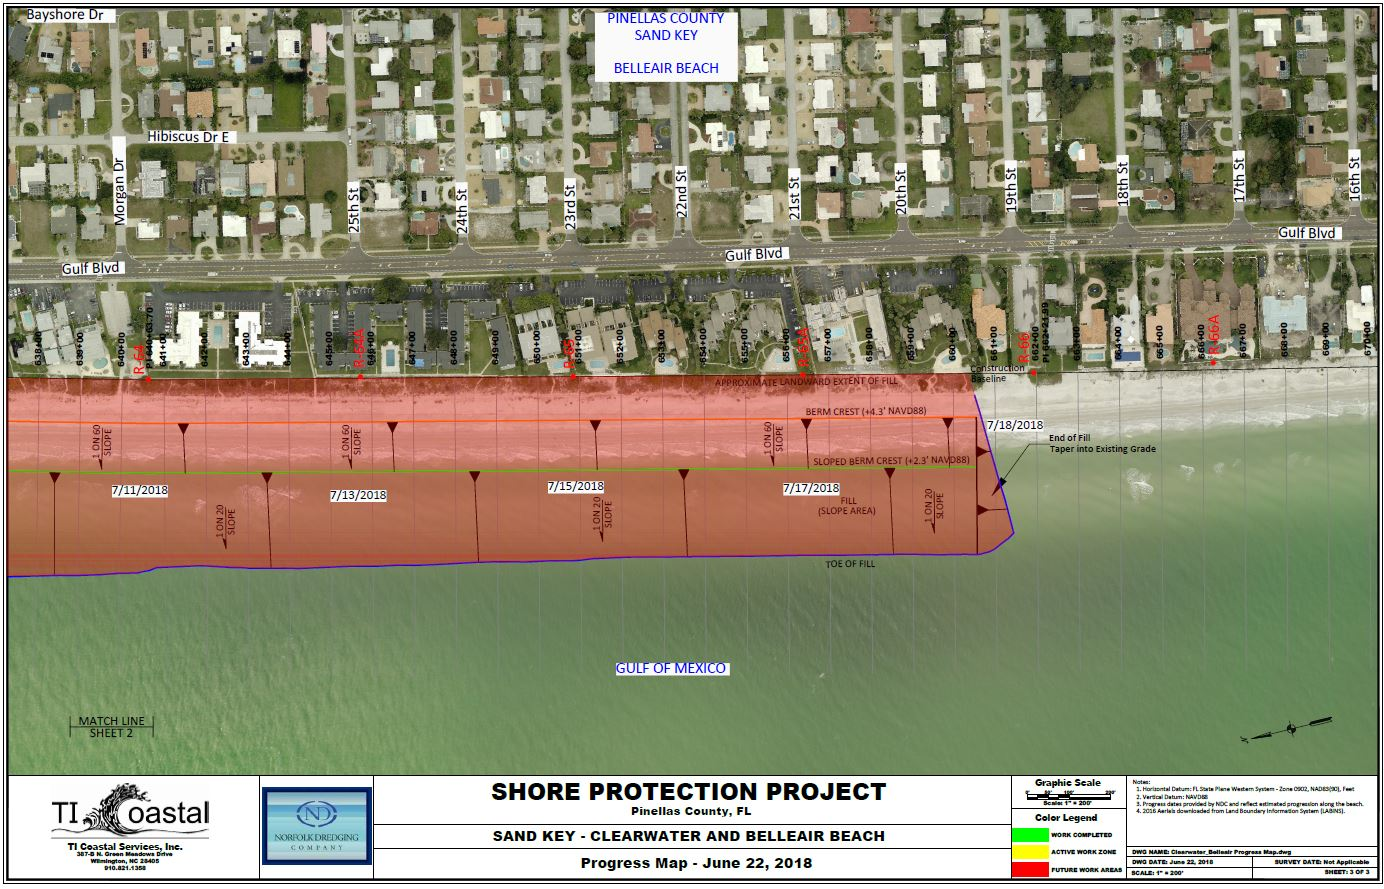 Pinellas County Shore Protection Project Progress Map June 22 2018